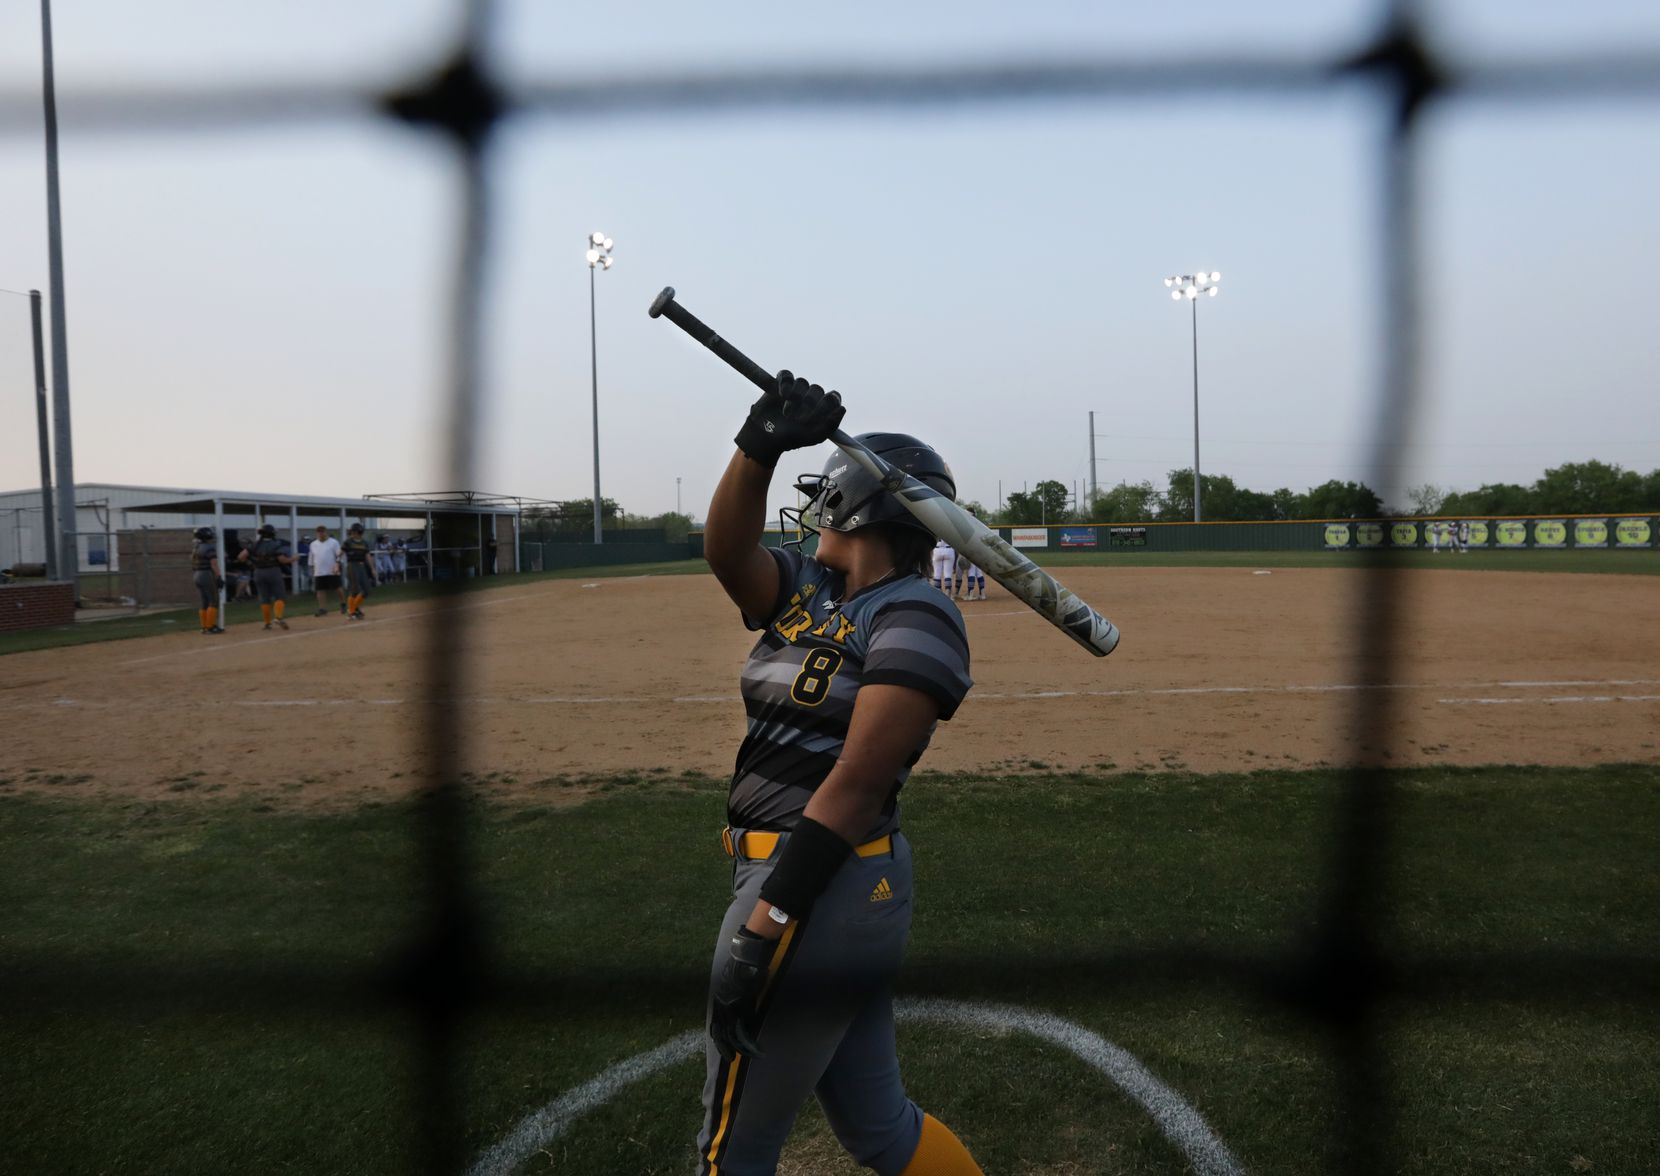 Vanessa Hollingsworth warms up during a softball game between Forney at North Forney at North Forney High School in Forney, TX, on Apr. 9, 2021. (Jason Janik/Special Contributor)